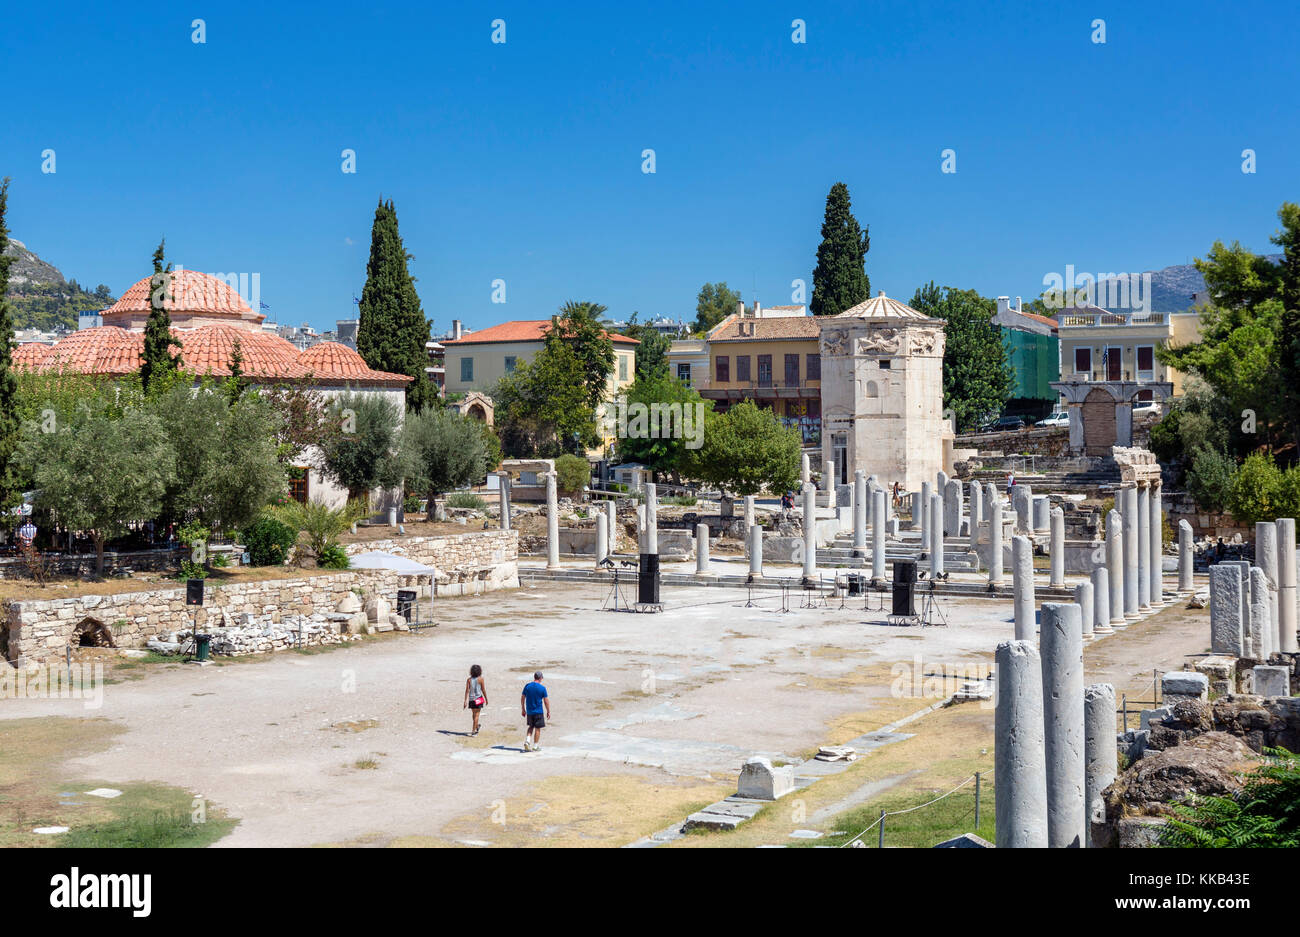 Roman Forum looking towards the Tower of the Winds, Athens, Greece - Stock Image